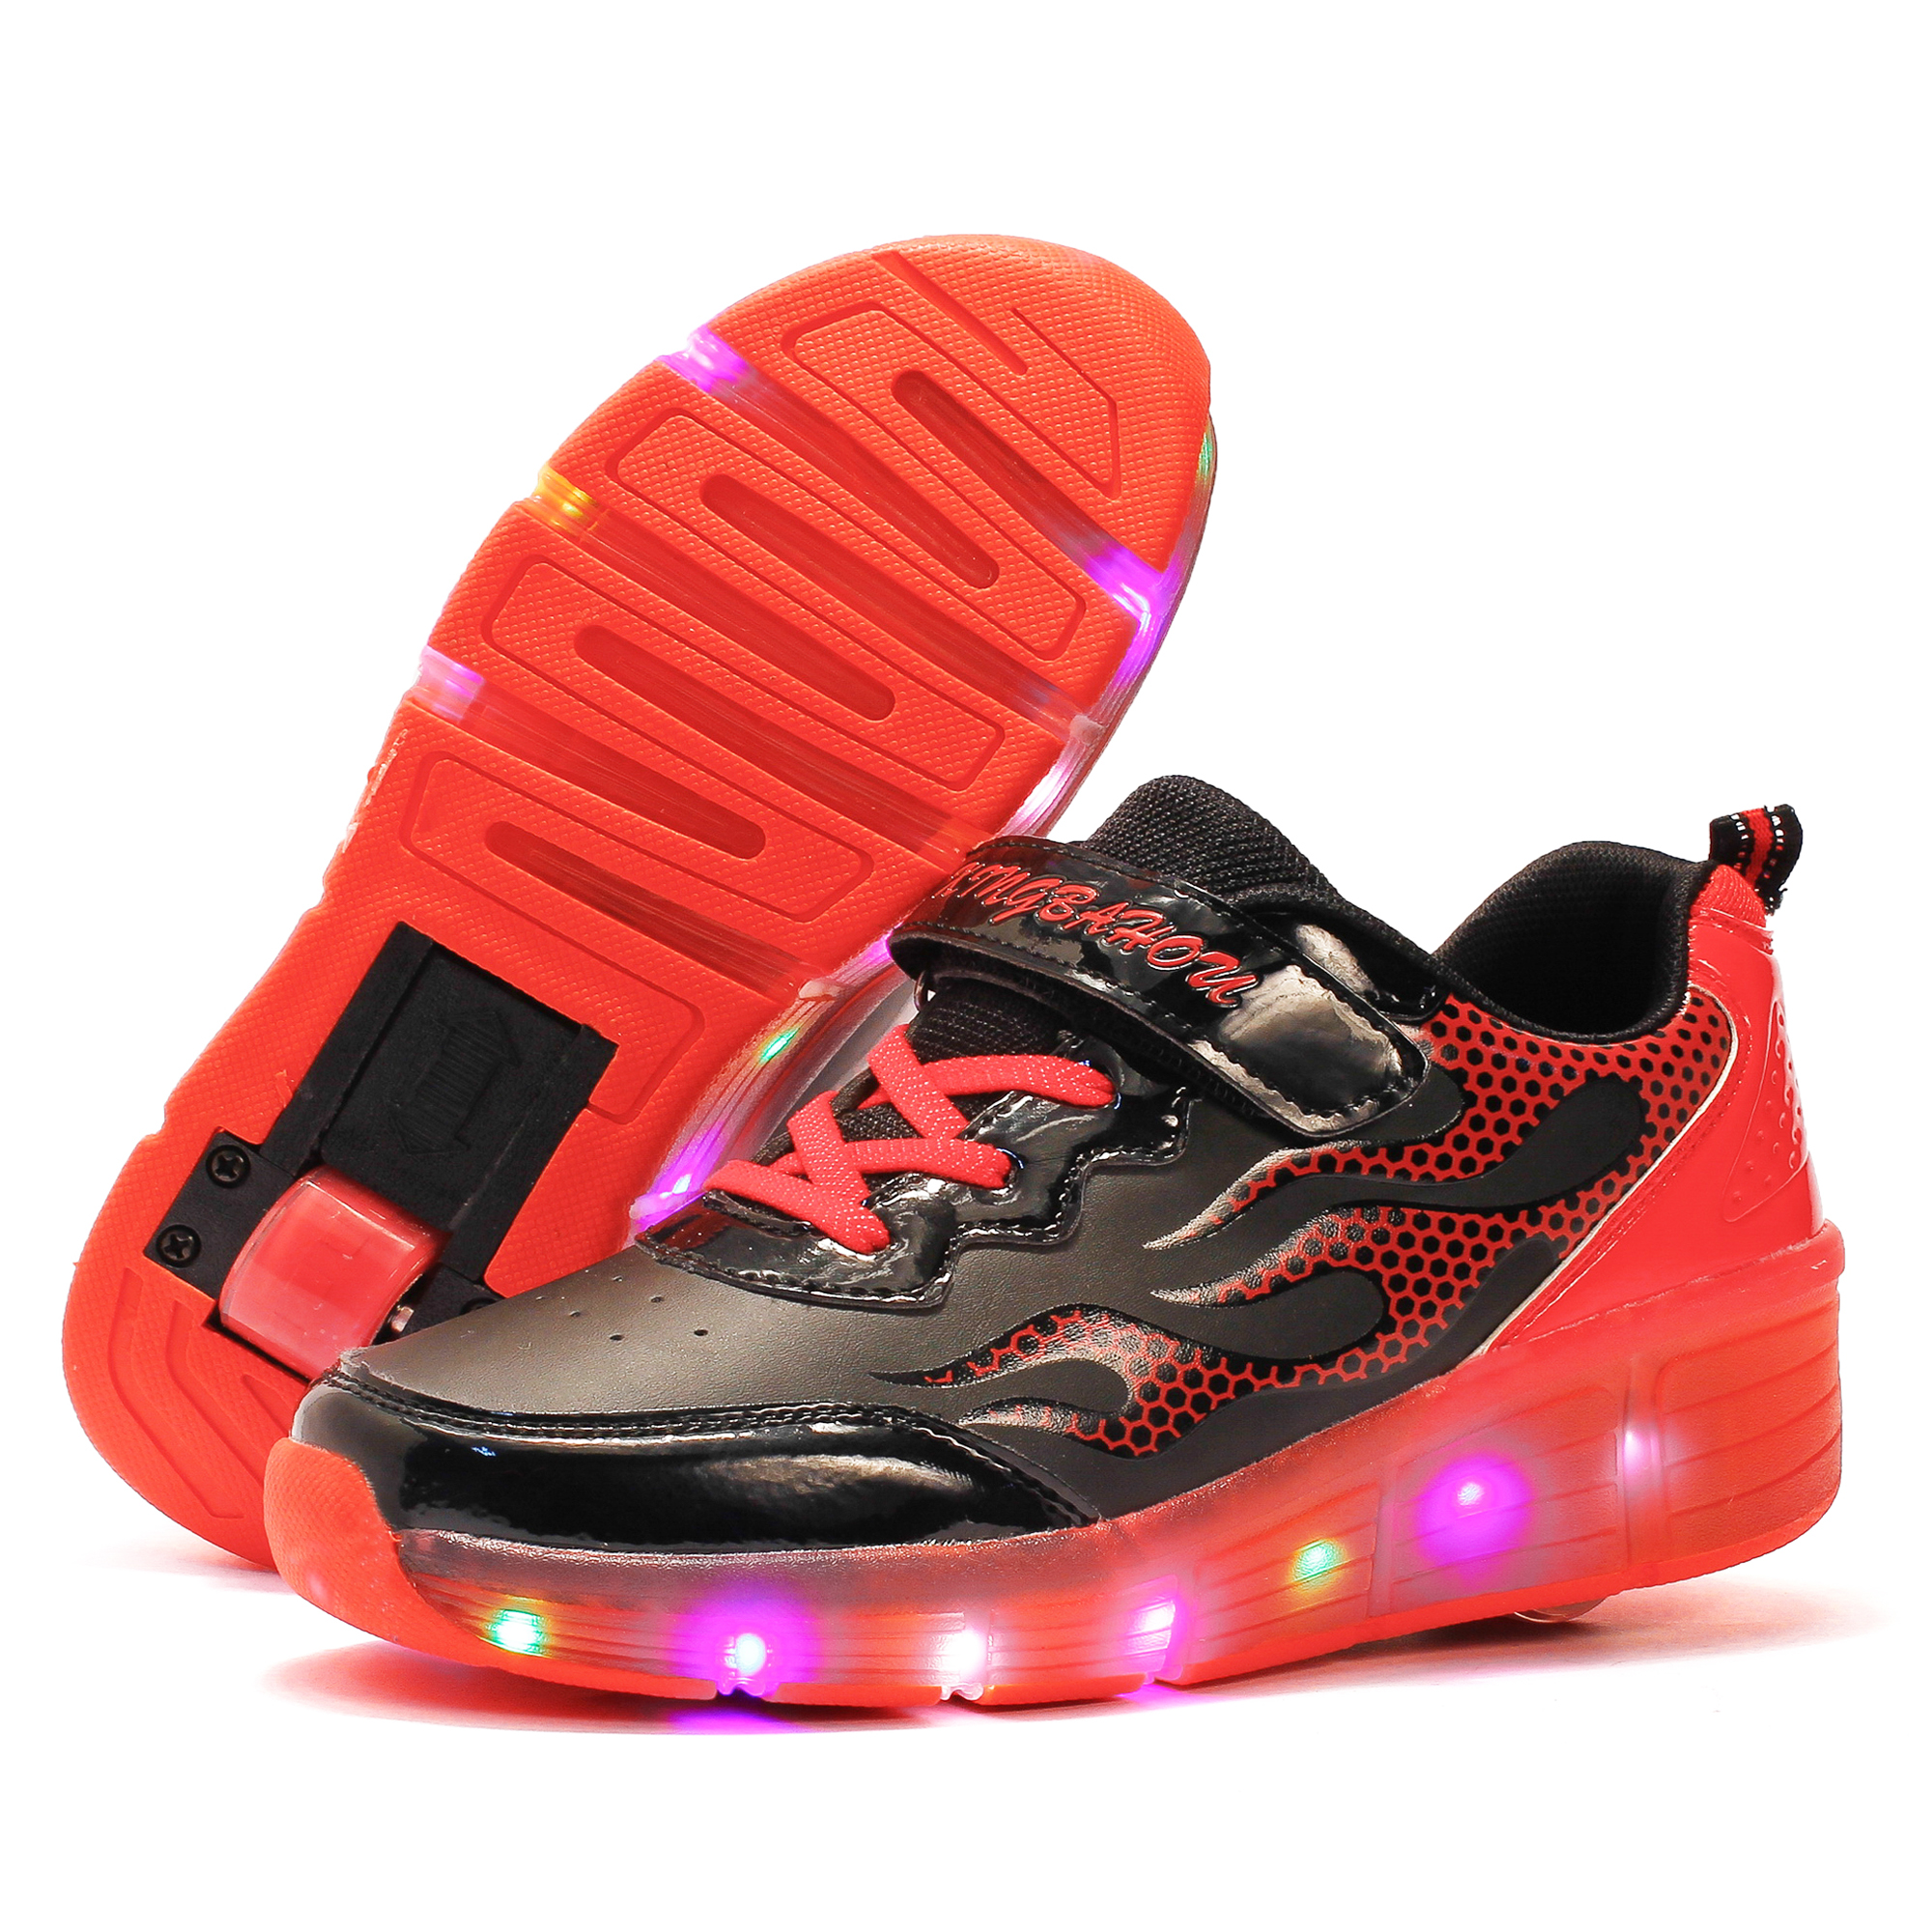 Colorful LED Flashing Roller Skate Shoes Flashing LED Roller Heelys Shoes Luminous Sneakers Boy Girl Light Up Shoes girls and ladies favorite white roller skates with full grain genuine leather dual lane roller skate shoes for adult skating